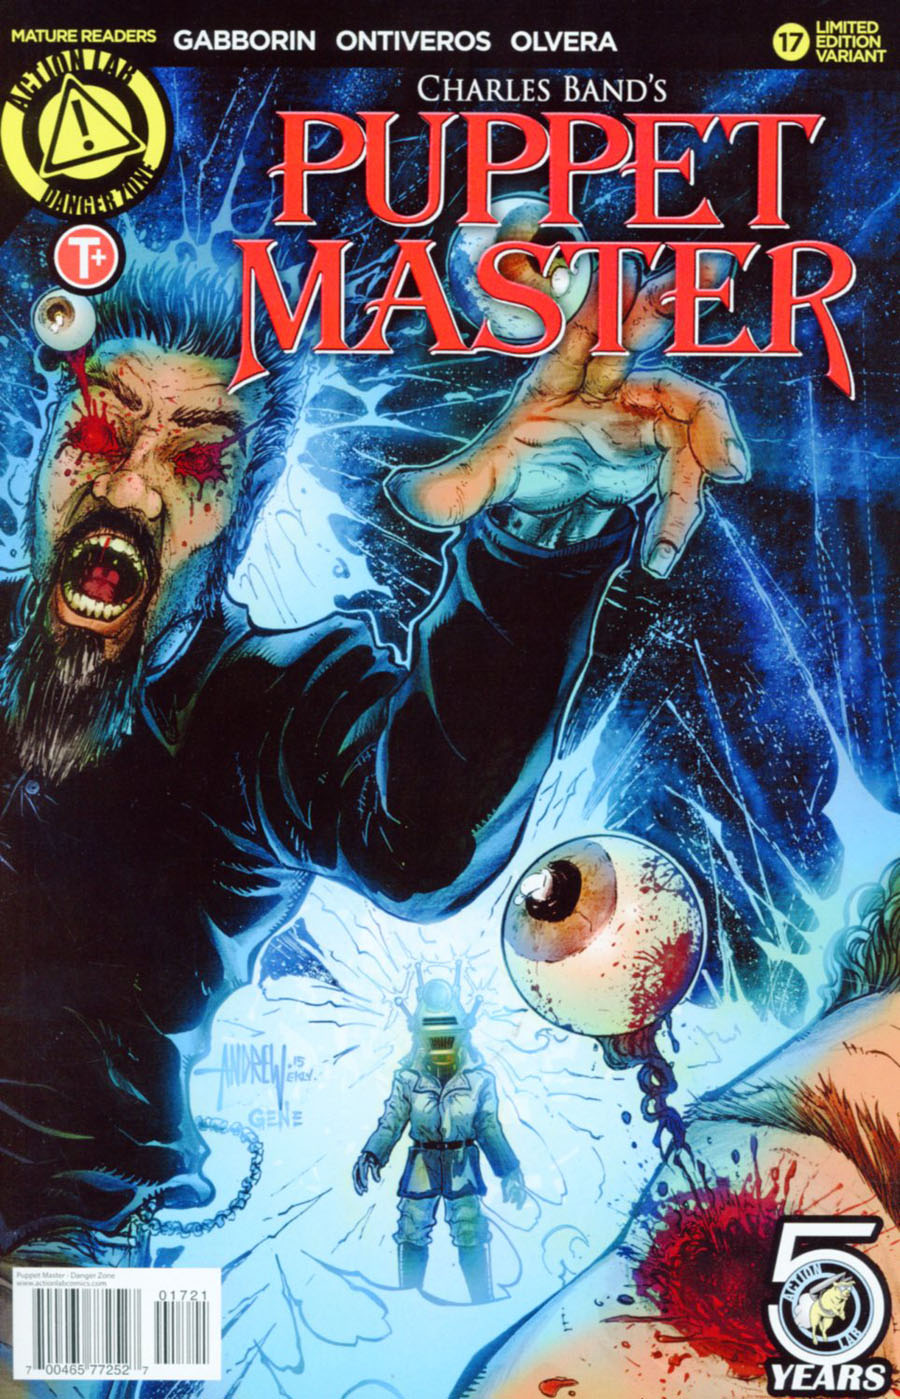 Puppet Master #17 Cover B Variant Andrew Mangum Kill Color Cover